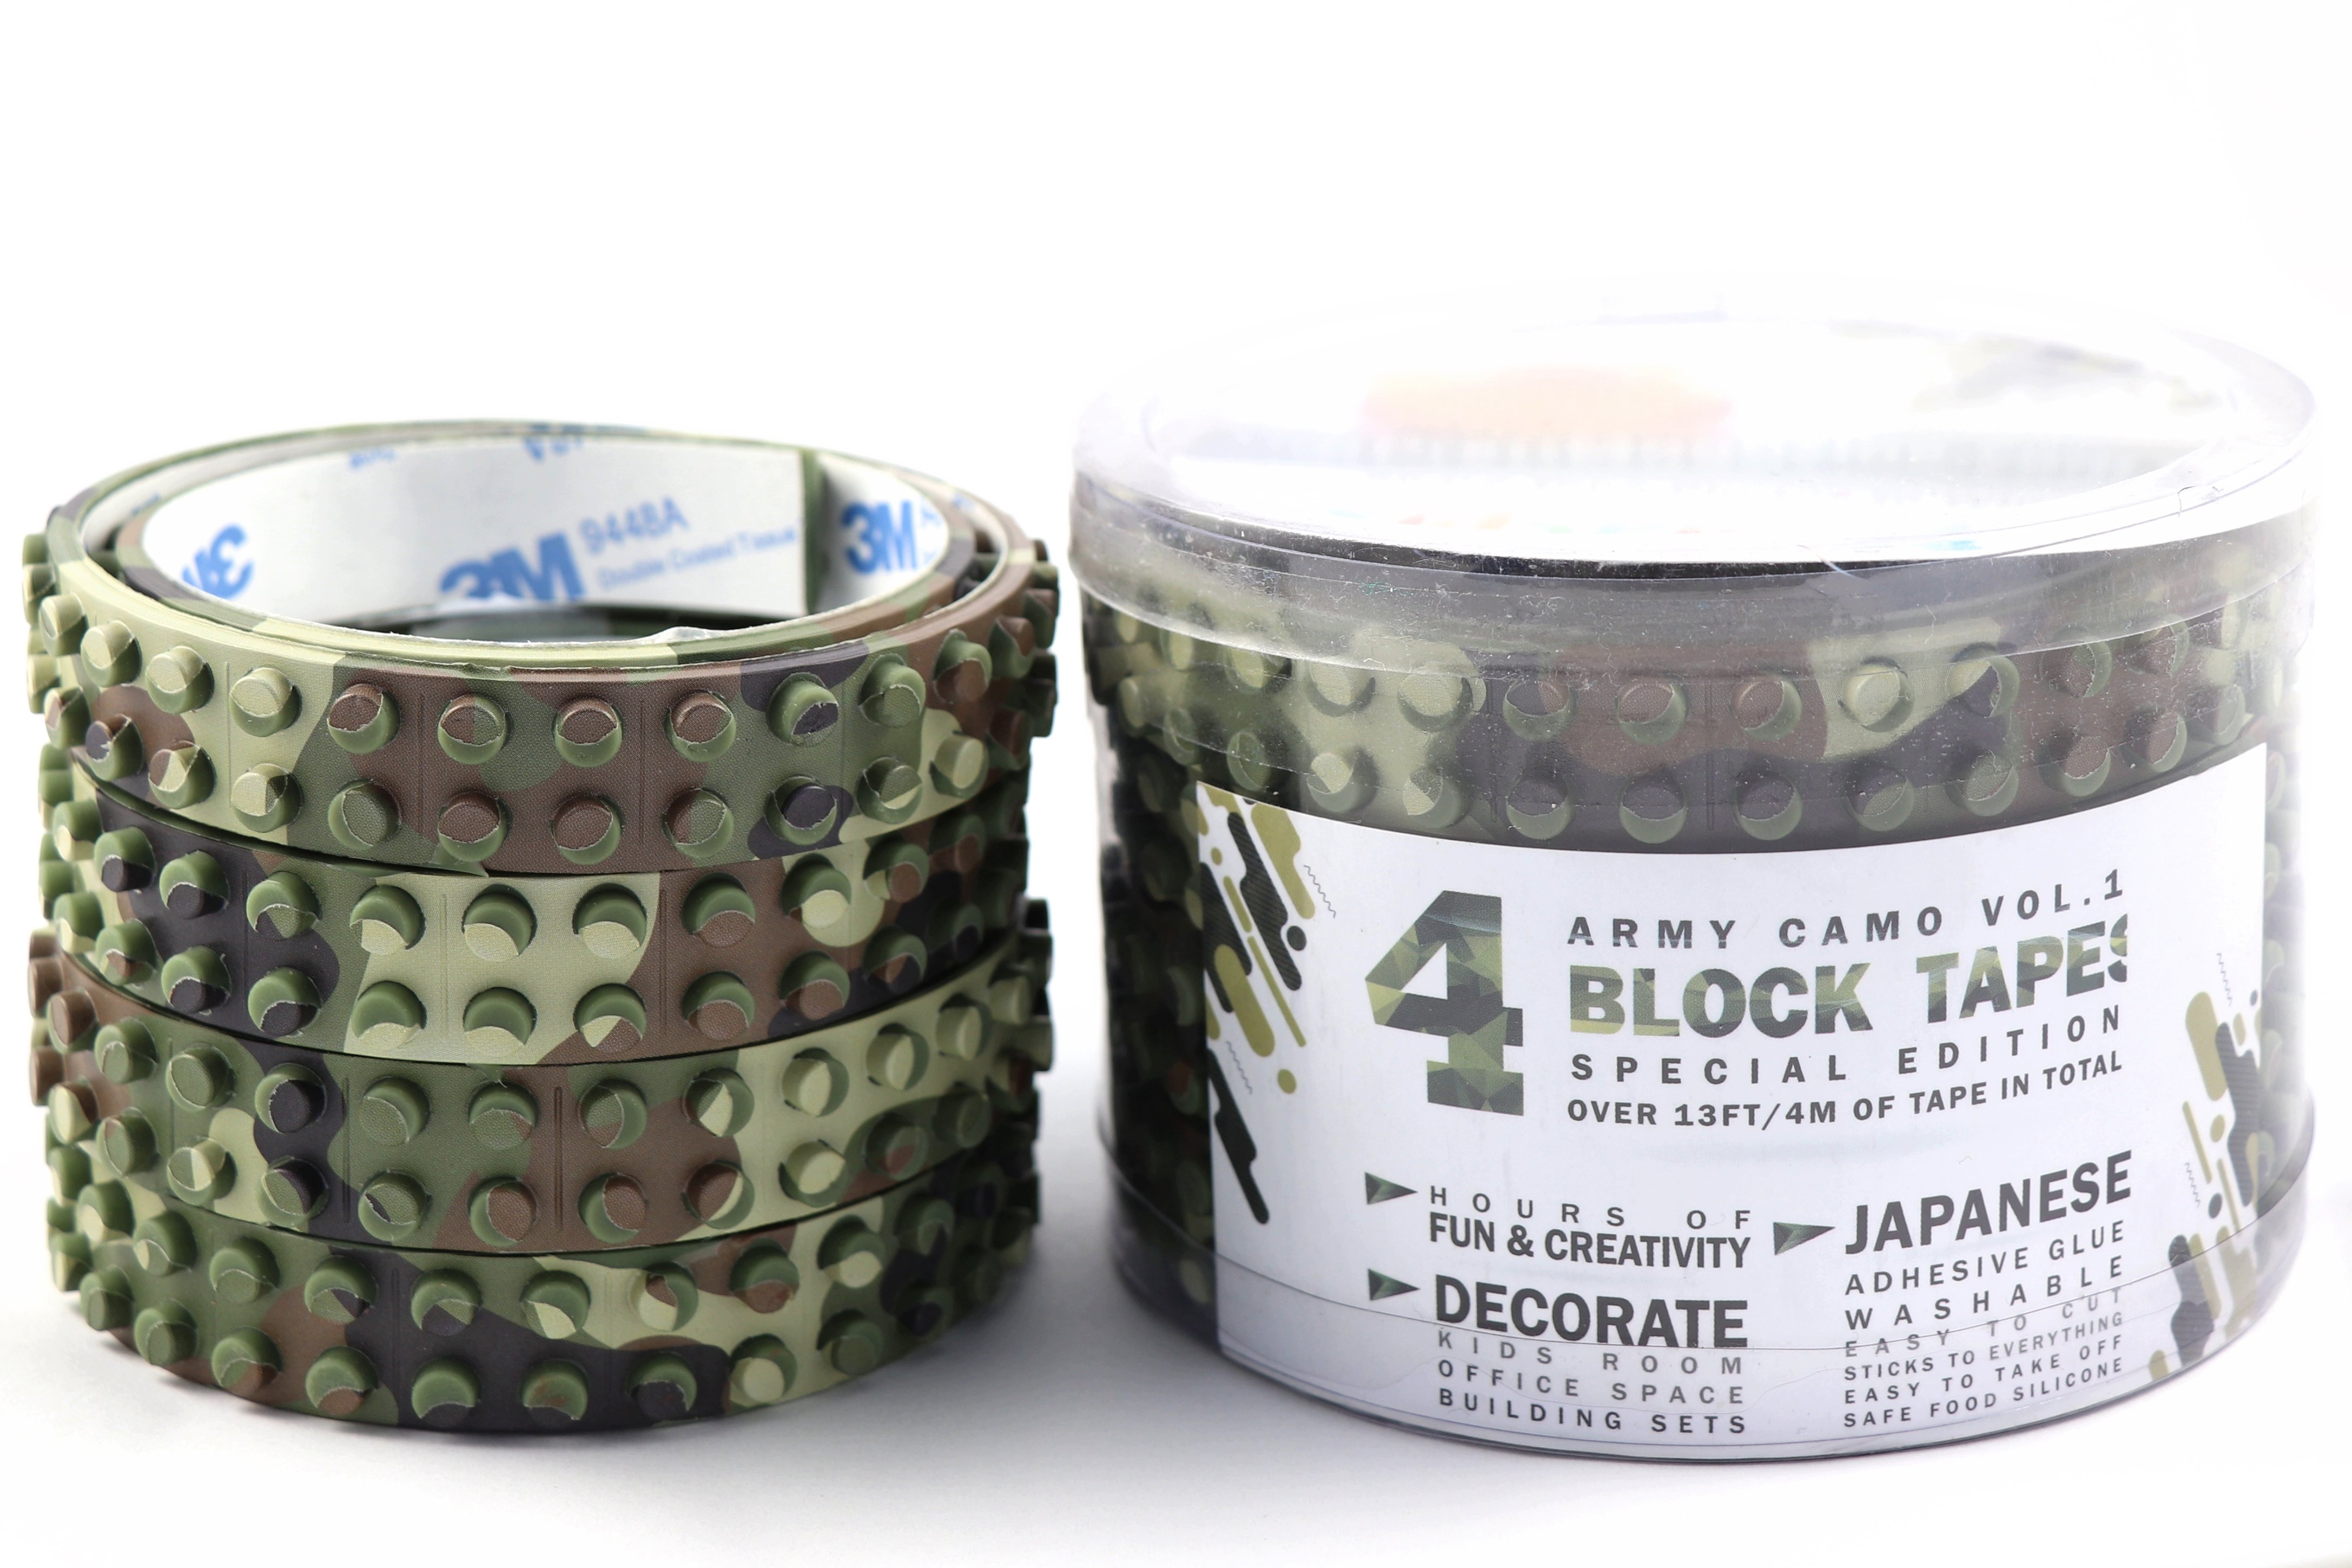 Camo Brick Tapes for Lego Set Builders